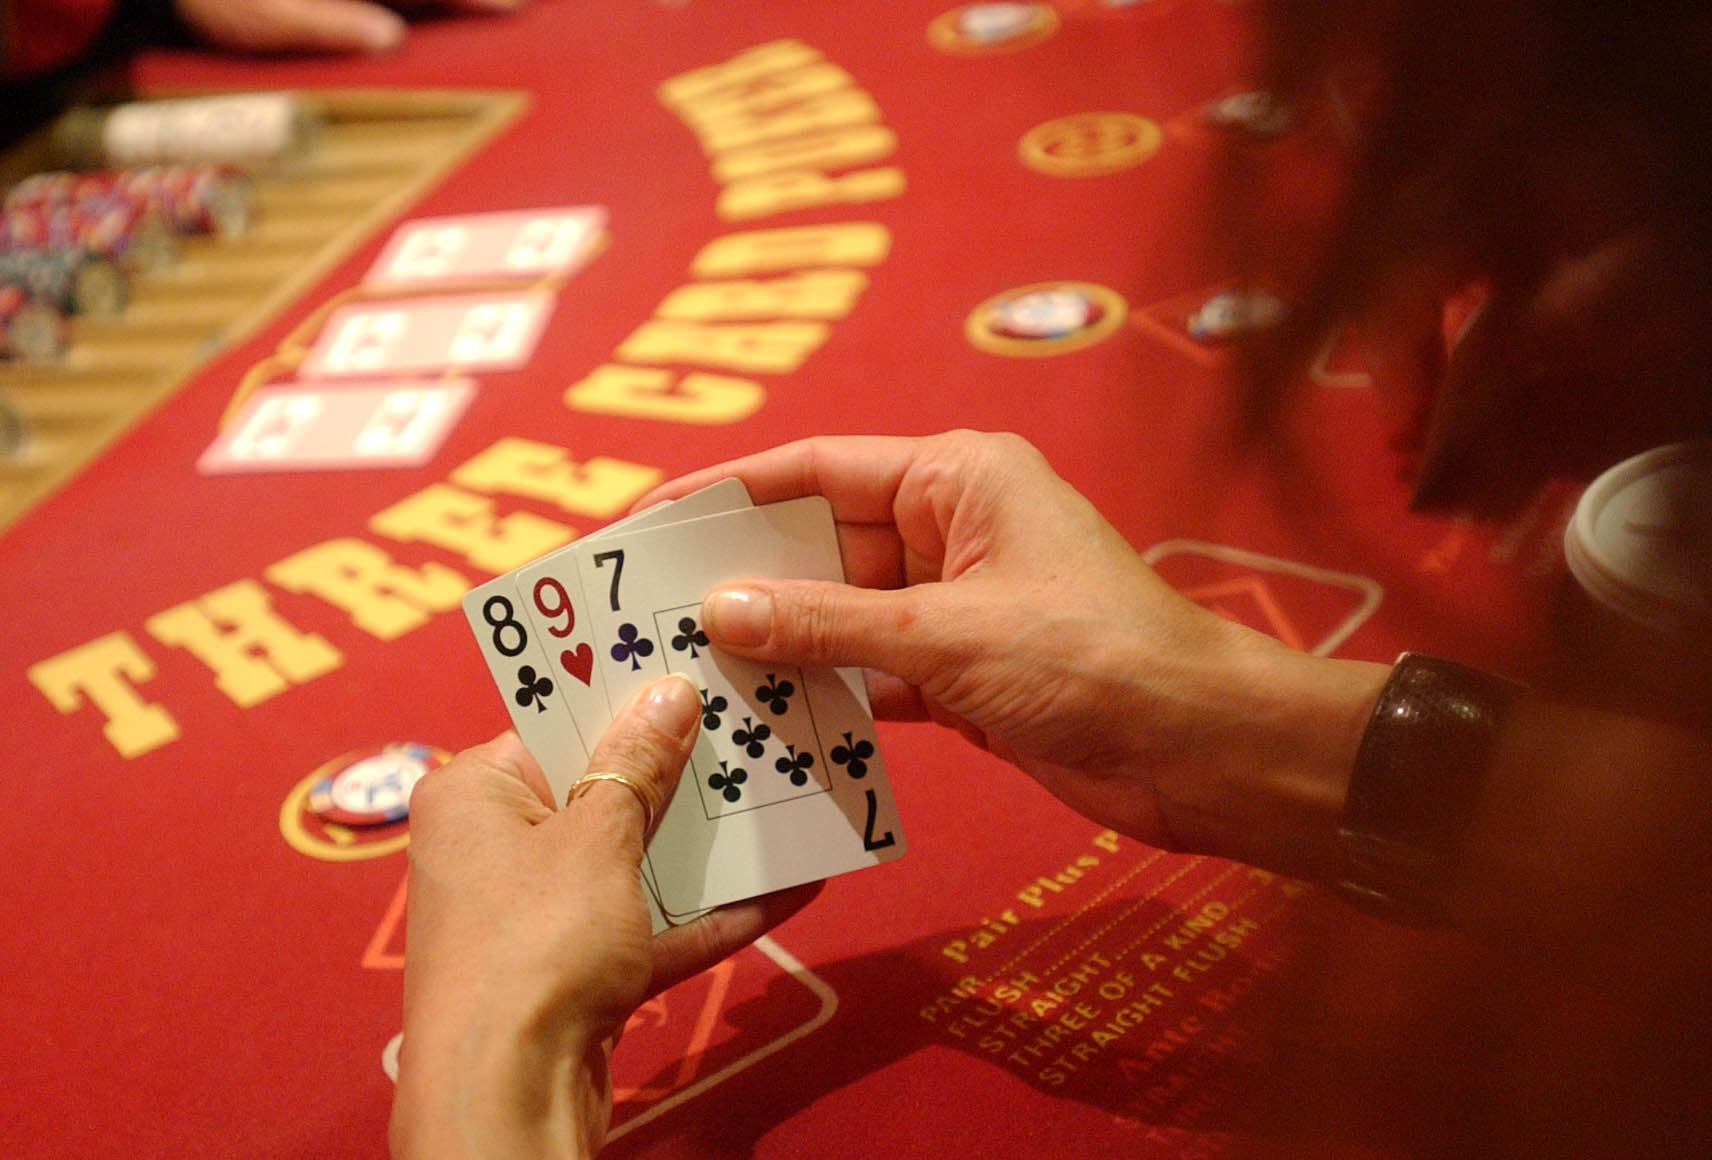 Three-card poker at an Indiana casino in 2004.